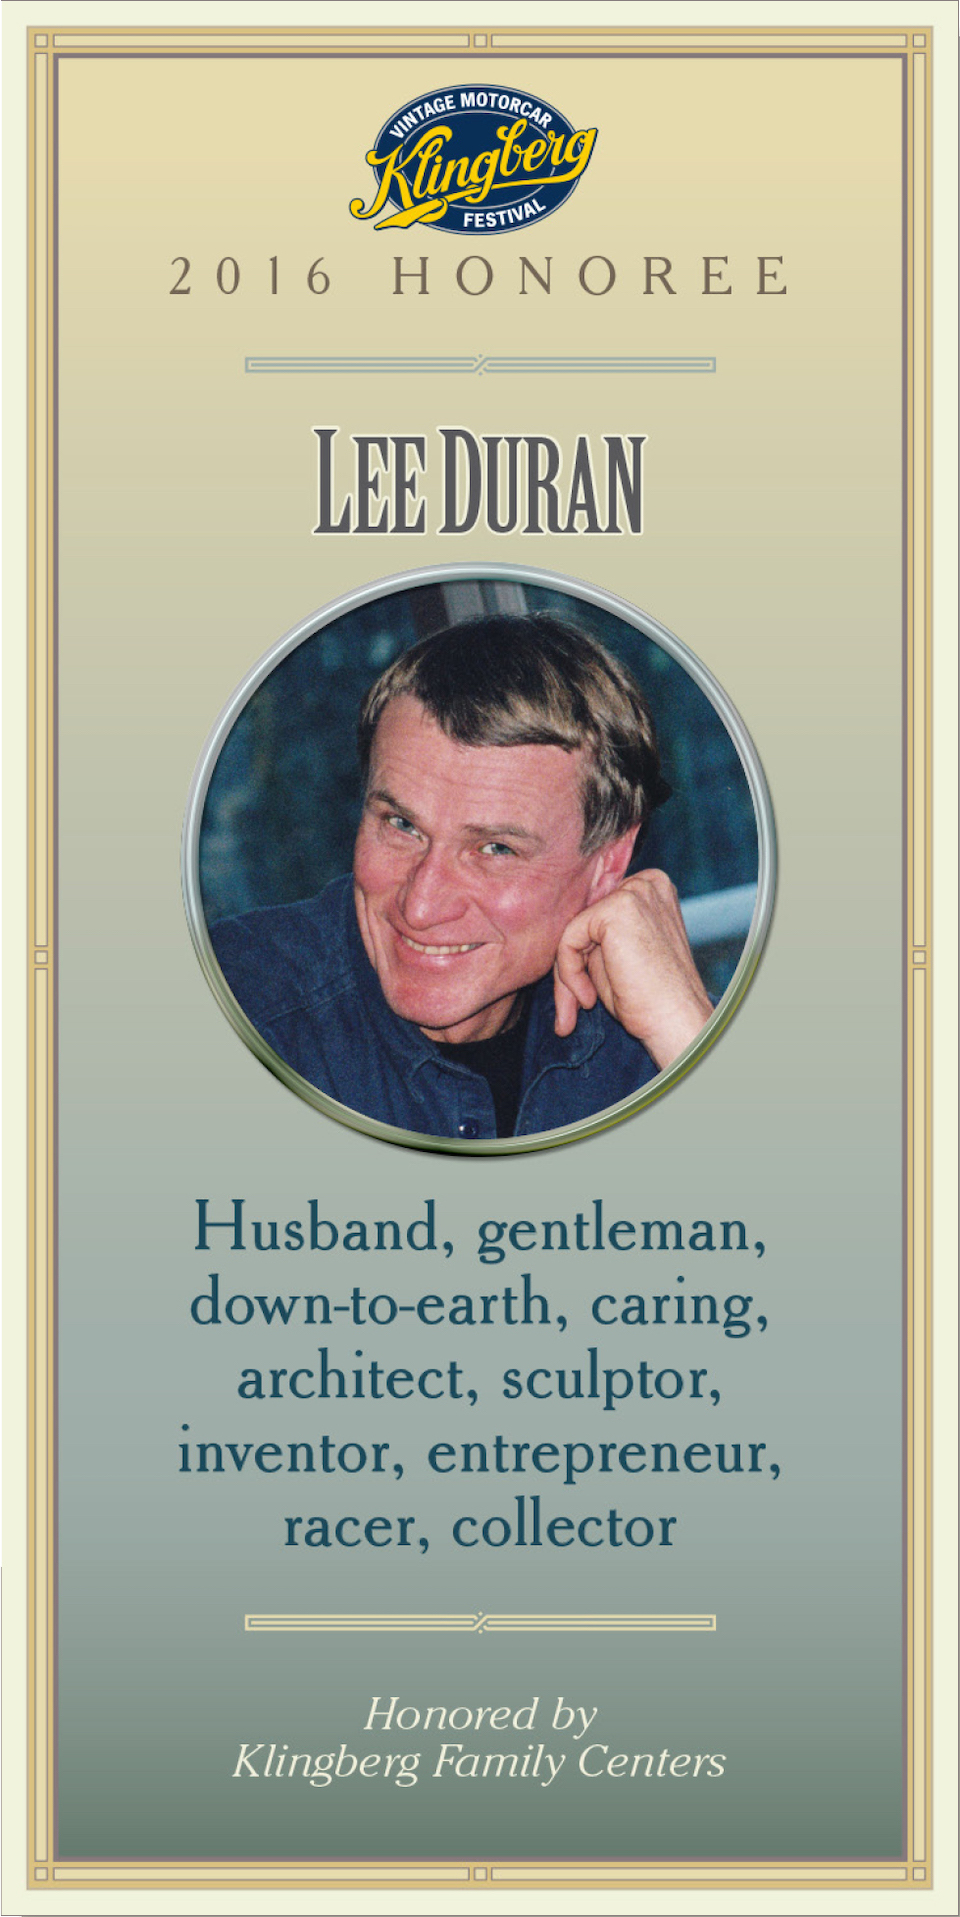 honor-lee-duran